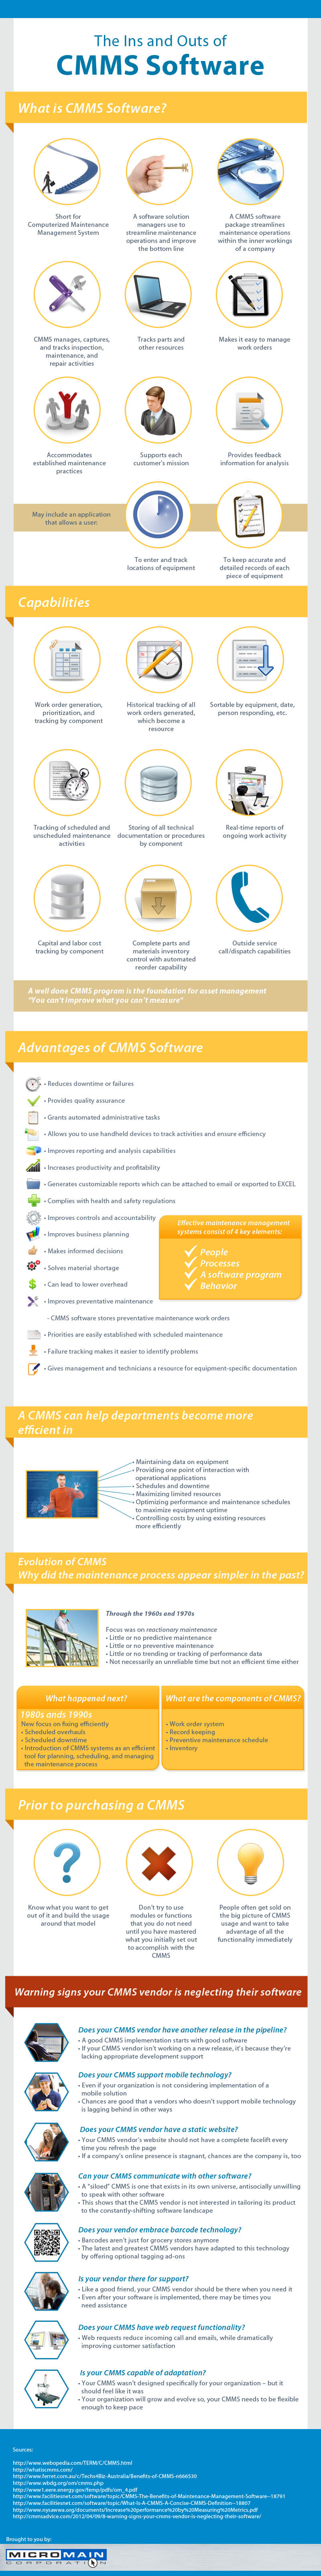 CMMS Software Infographic